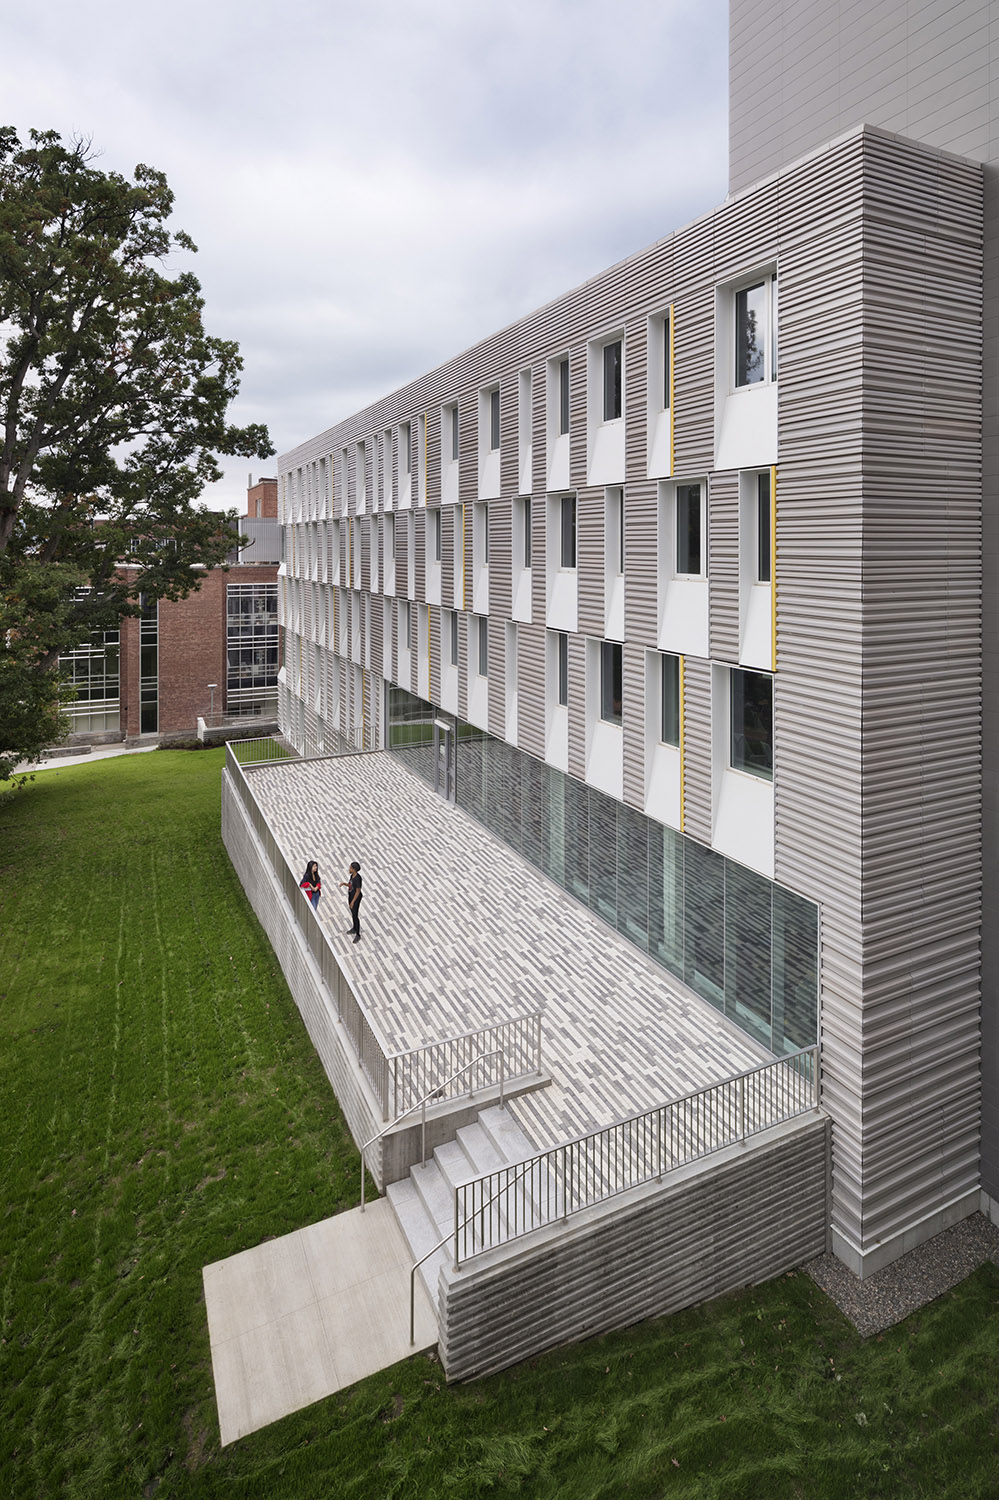 Cornell University Upson Hall: South Facade Michael Moran